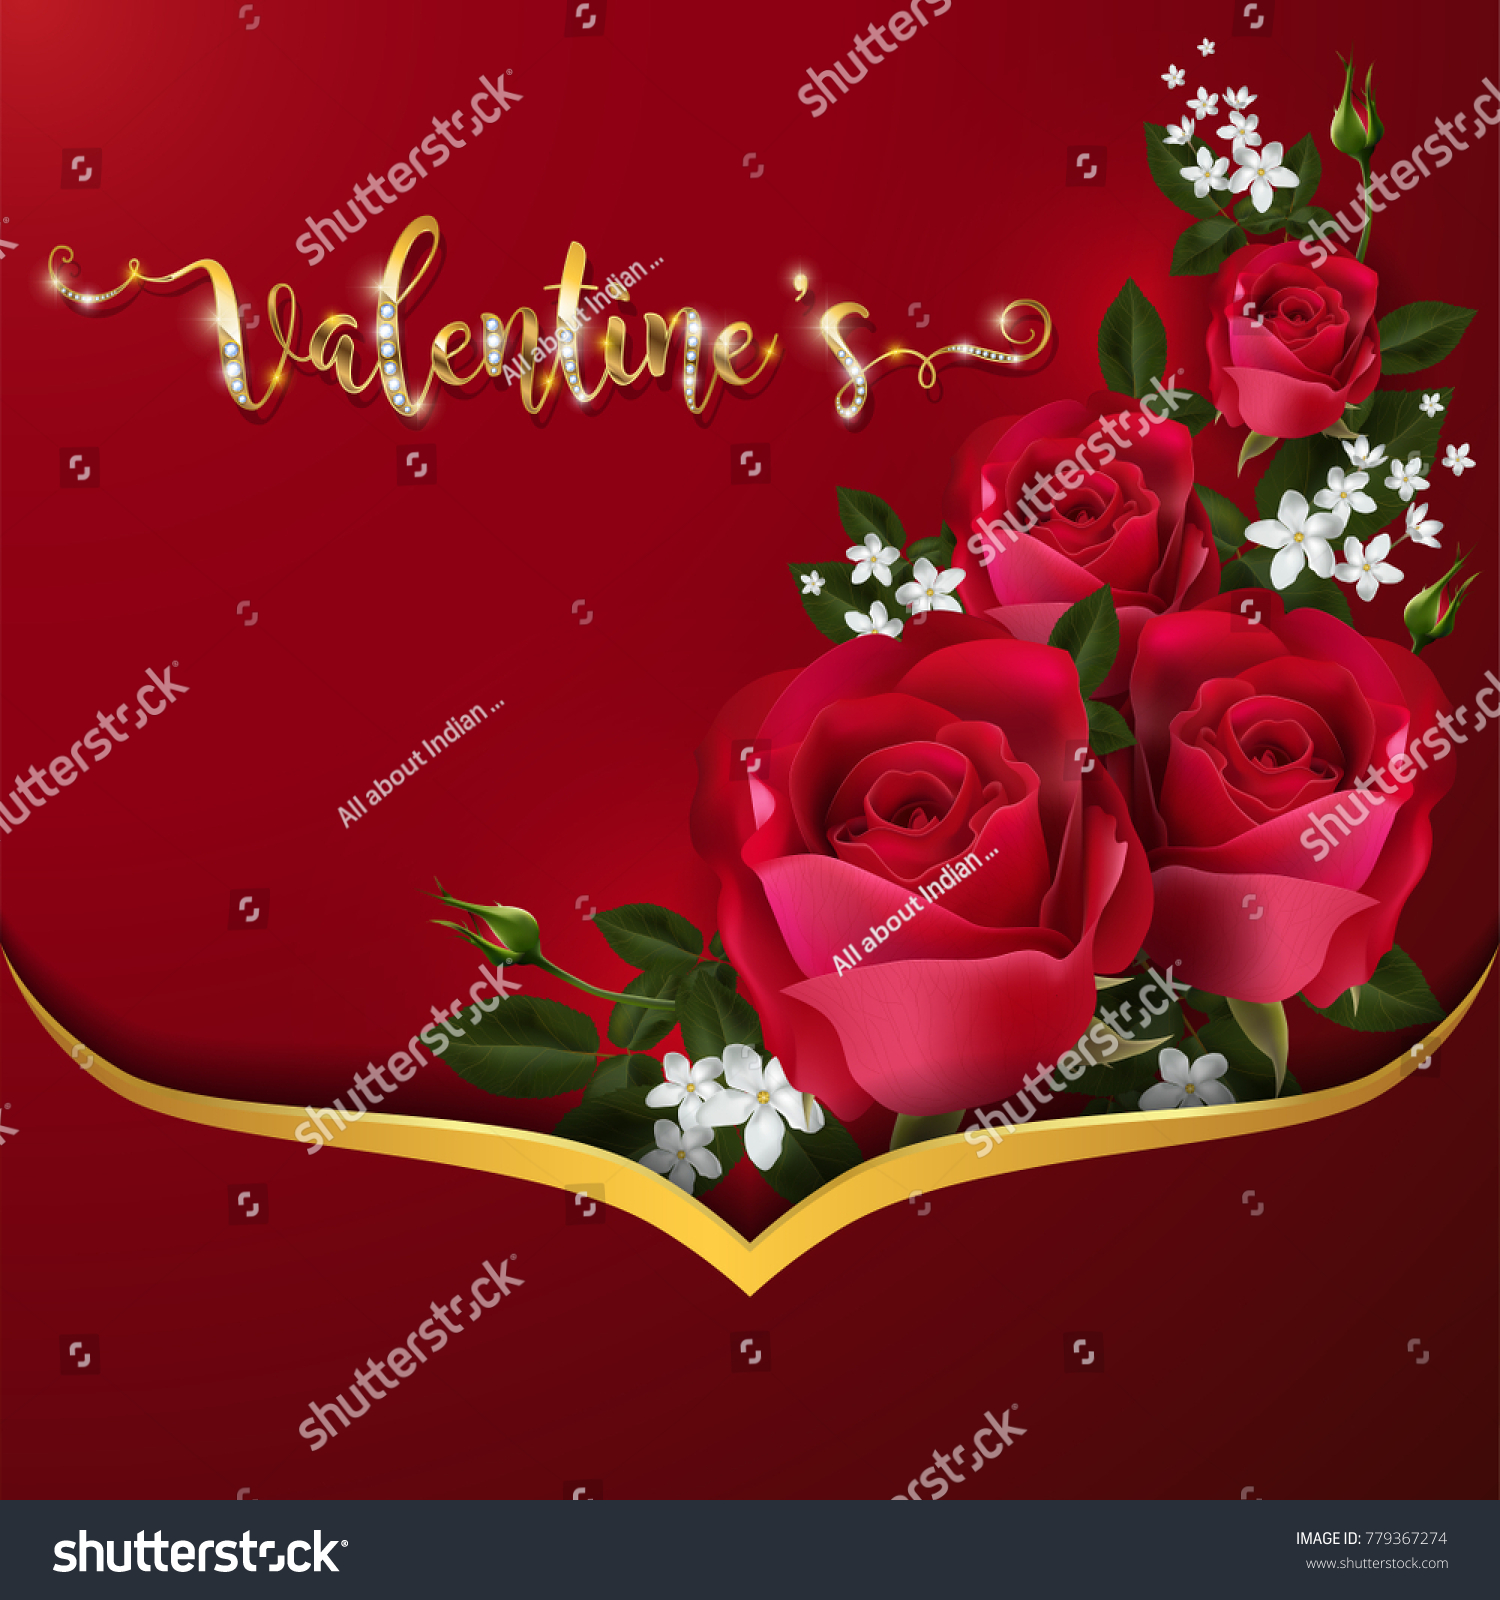 Valentines day greeting cards templates realistic stock vector hd valentines day greeting cards templates with realistic of beautiful rose gold patterned on background color m4hsunfo